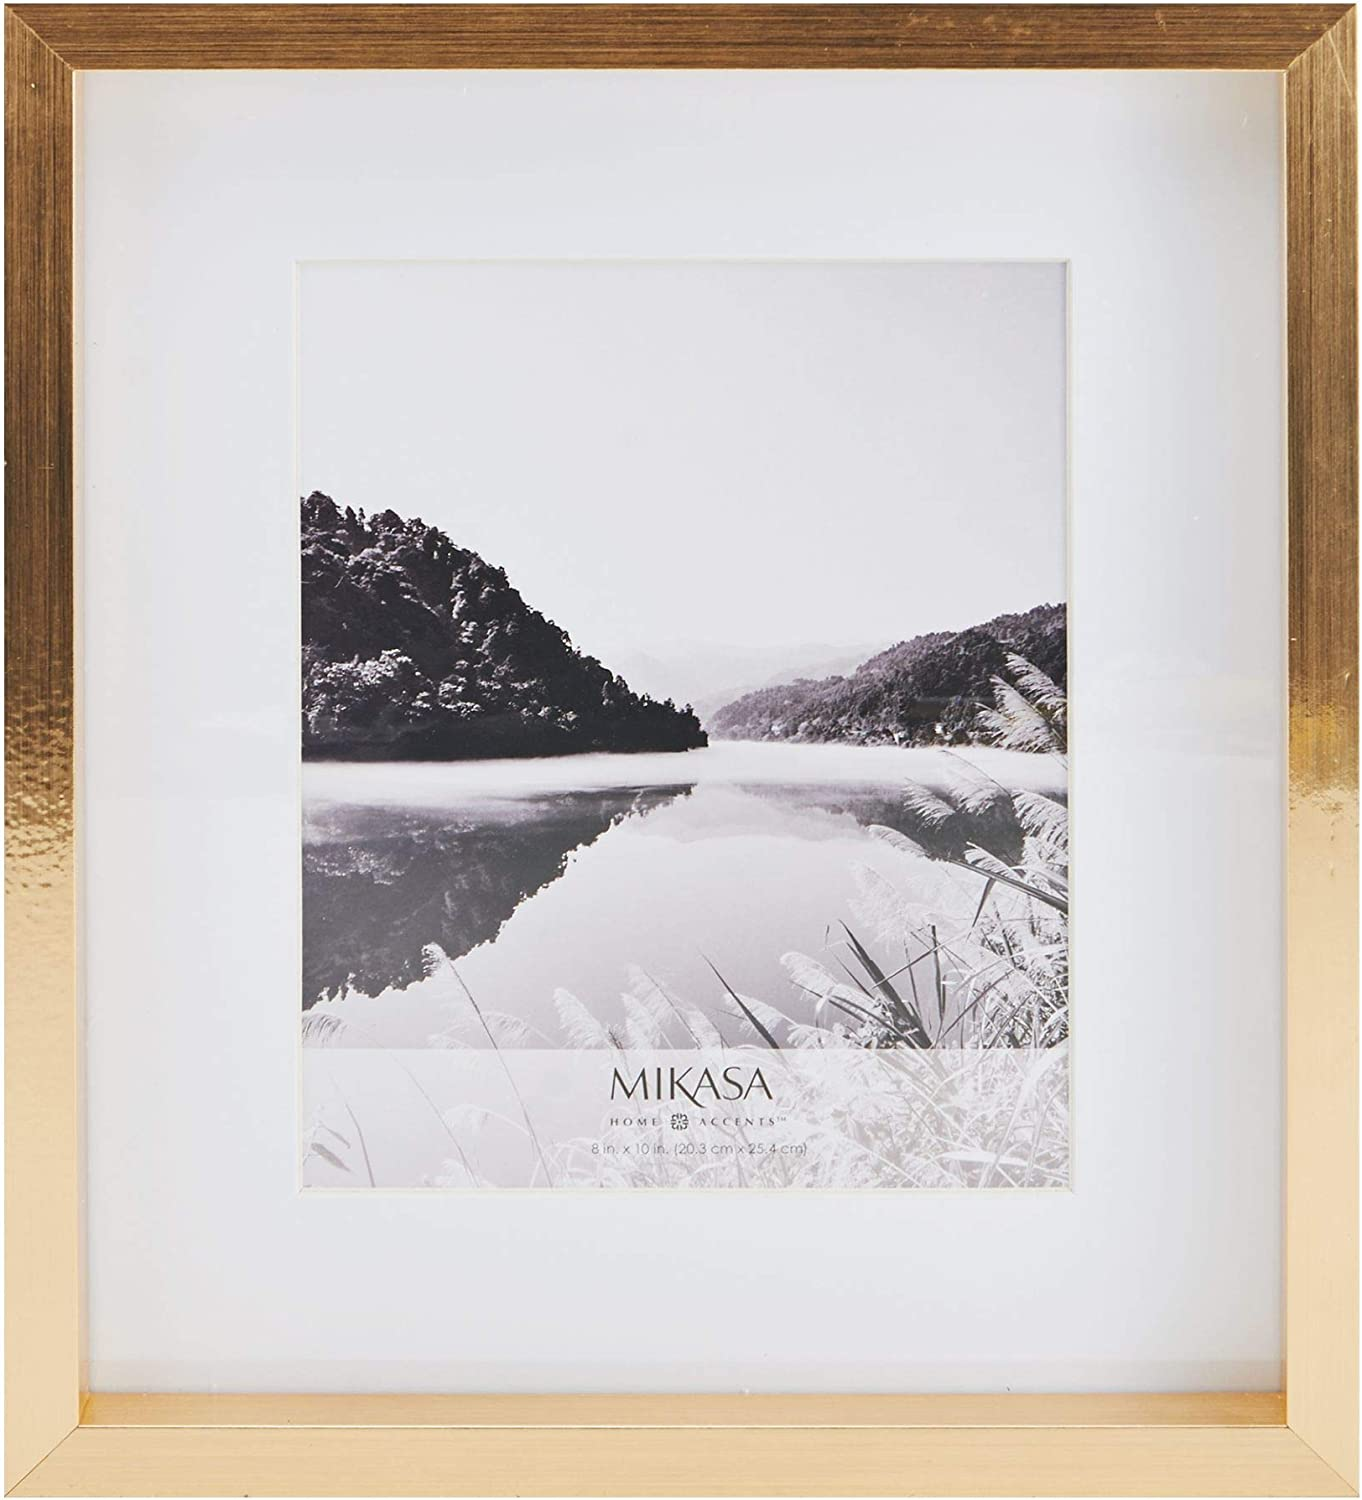 MIKASA Matted Picture Frame, 8x10 Inch, Gold